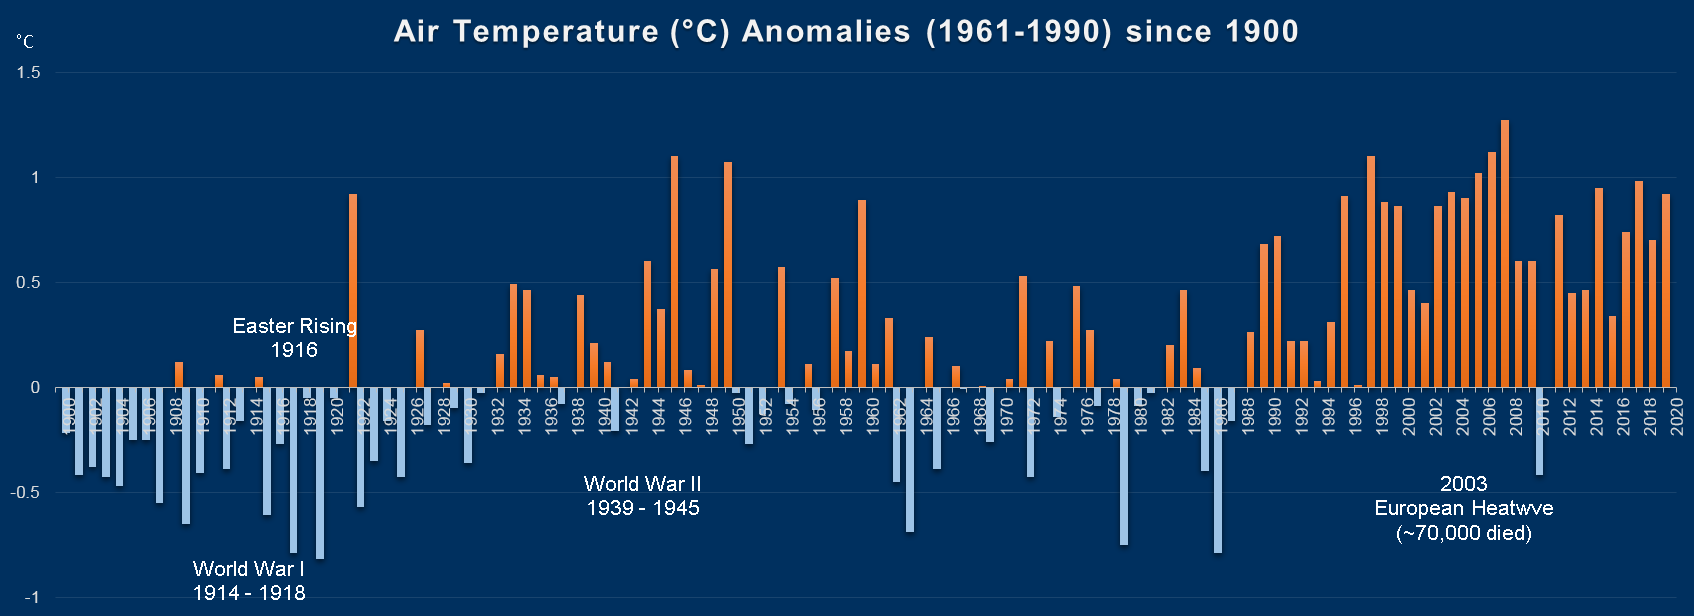 Centennial stations compared to Long Term Average (LTA) 1961-1990 since 1900 for Mean Air Temperature (°C)